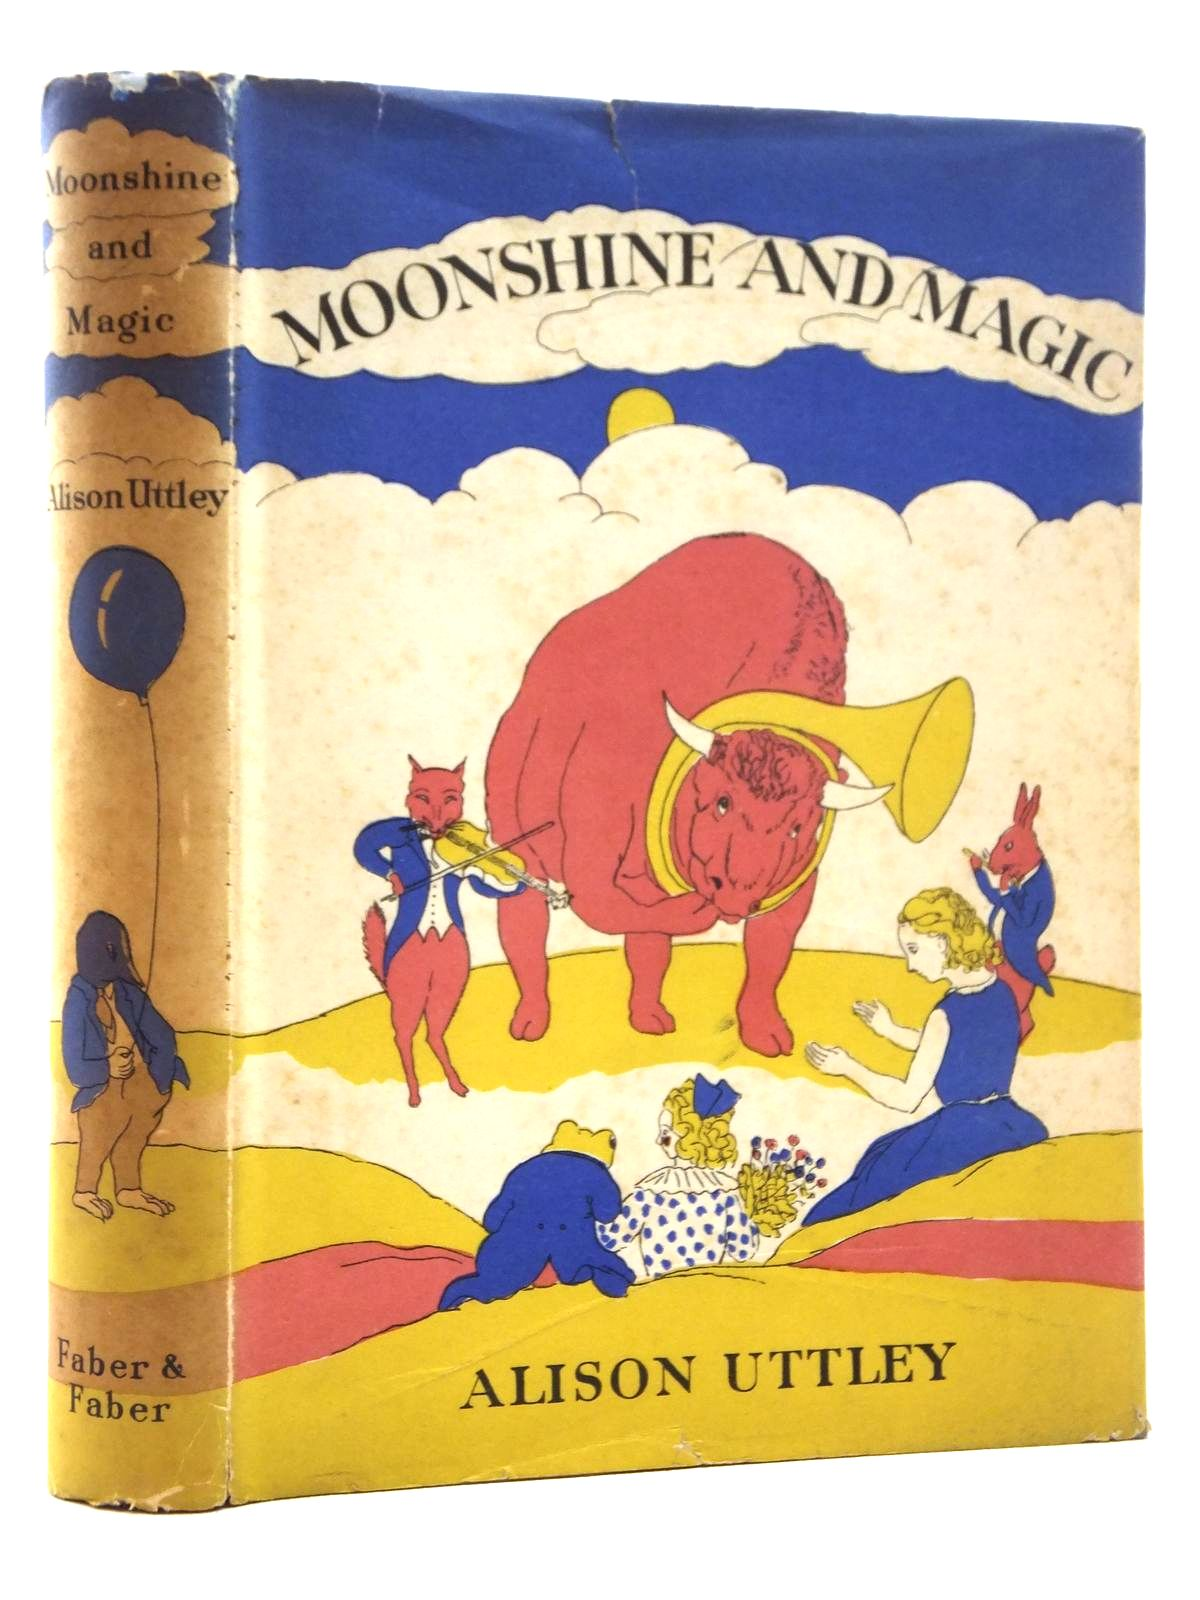 Photo of MOONSHINE AND MAGIC written by Uttley, Alison illustrated by Townsend, William published by Faber & Faber (STOCK CODE: 1609837)  for sale by Stella & Rose's Books